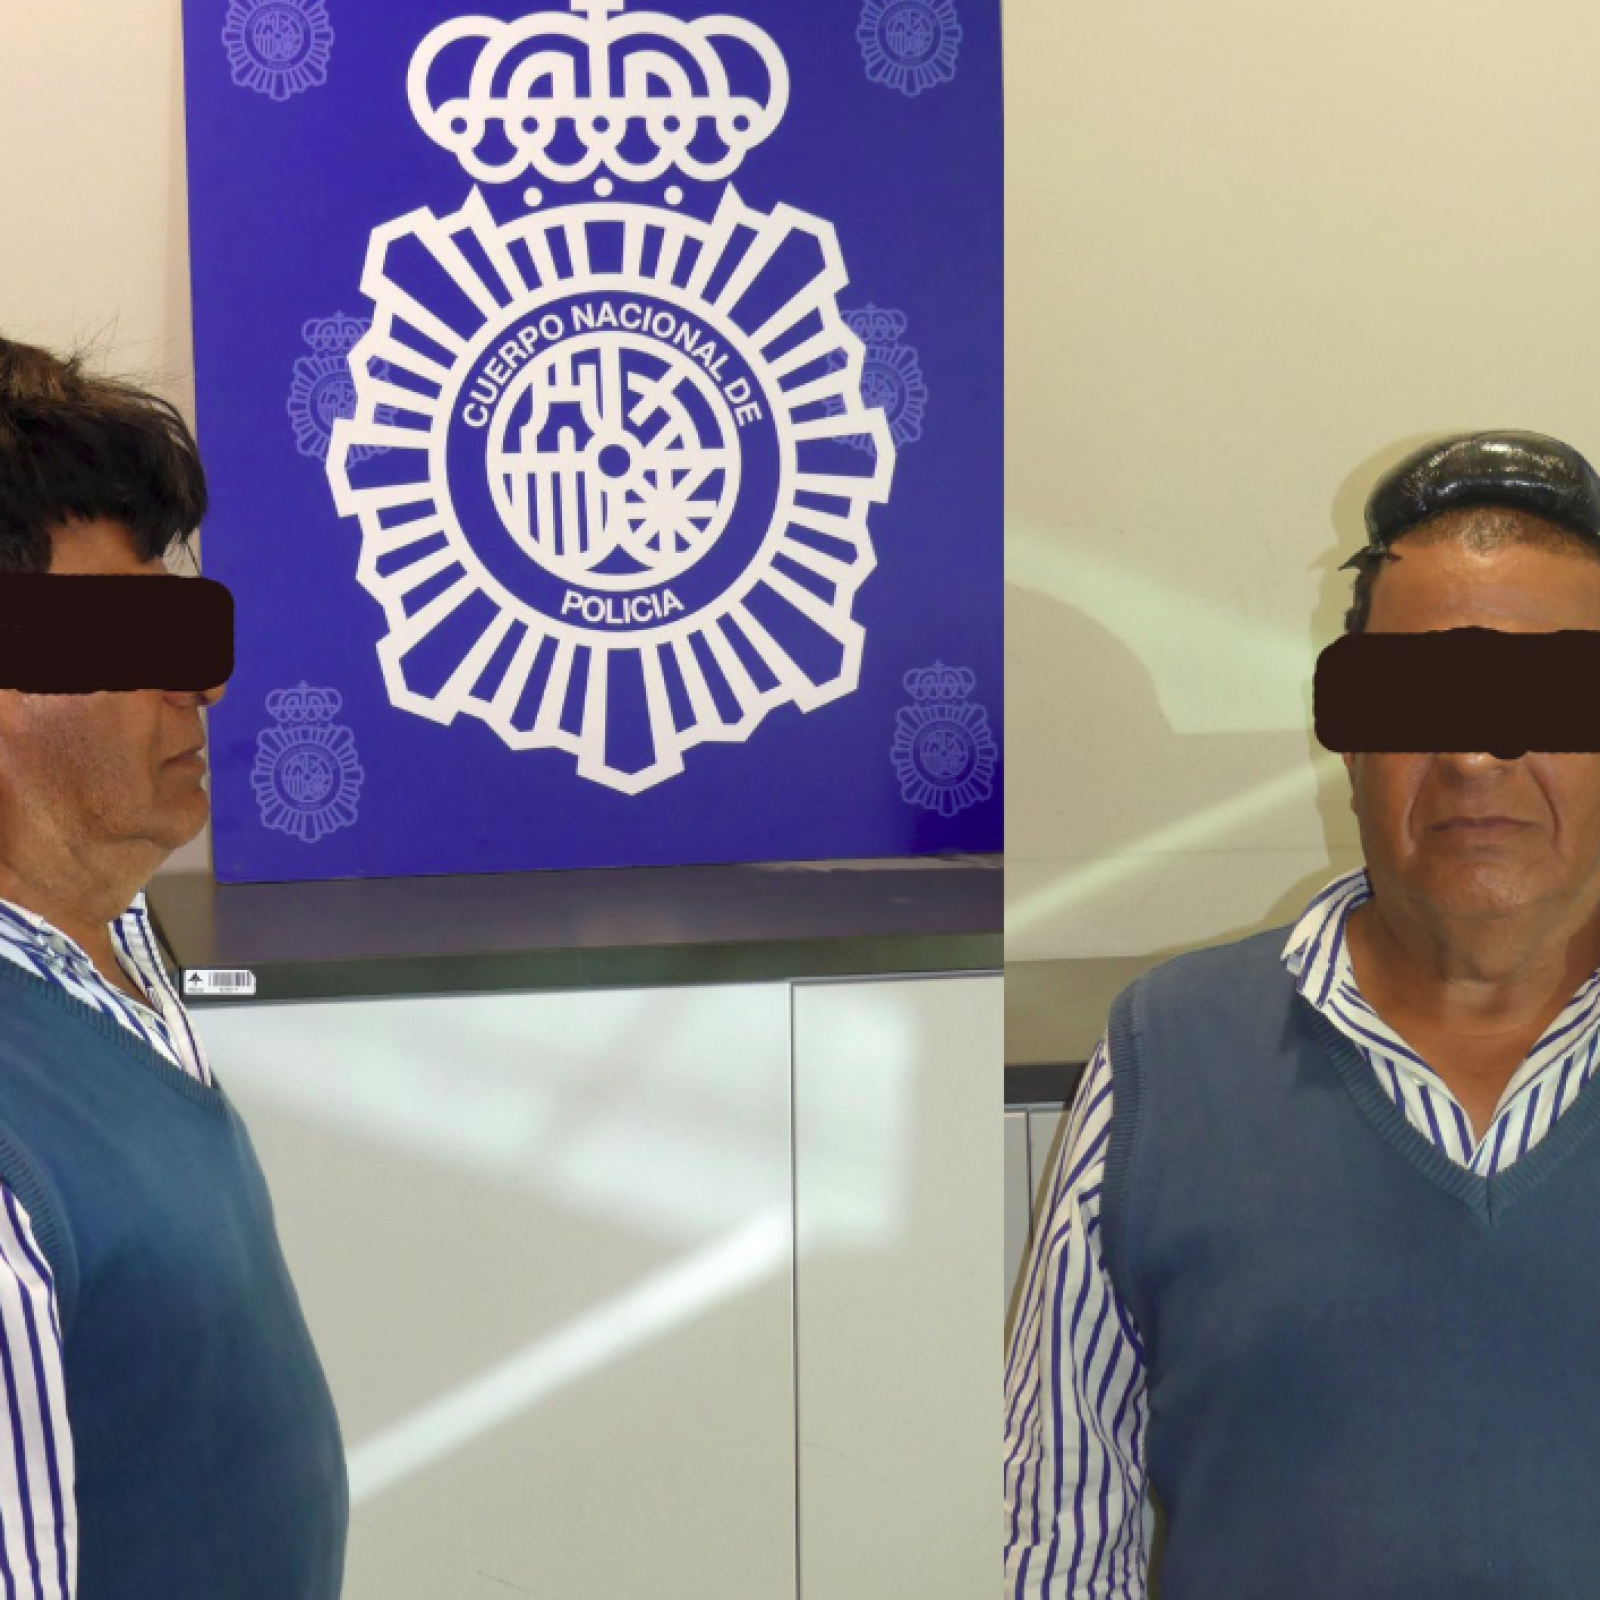 Man With Half Kilo of Cocaine Hidden in Wig Arrested at Airport